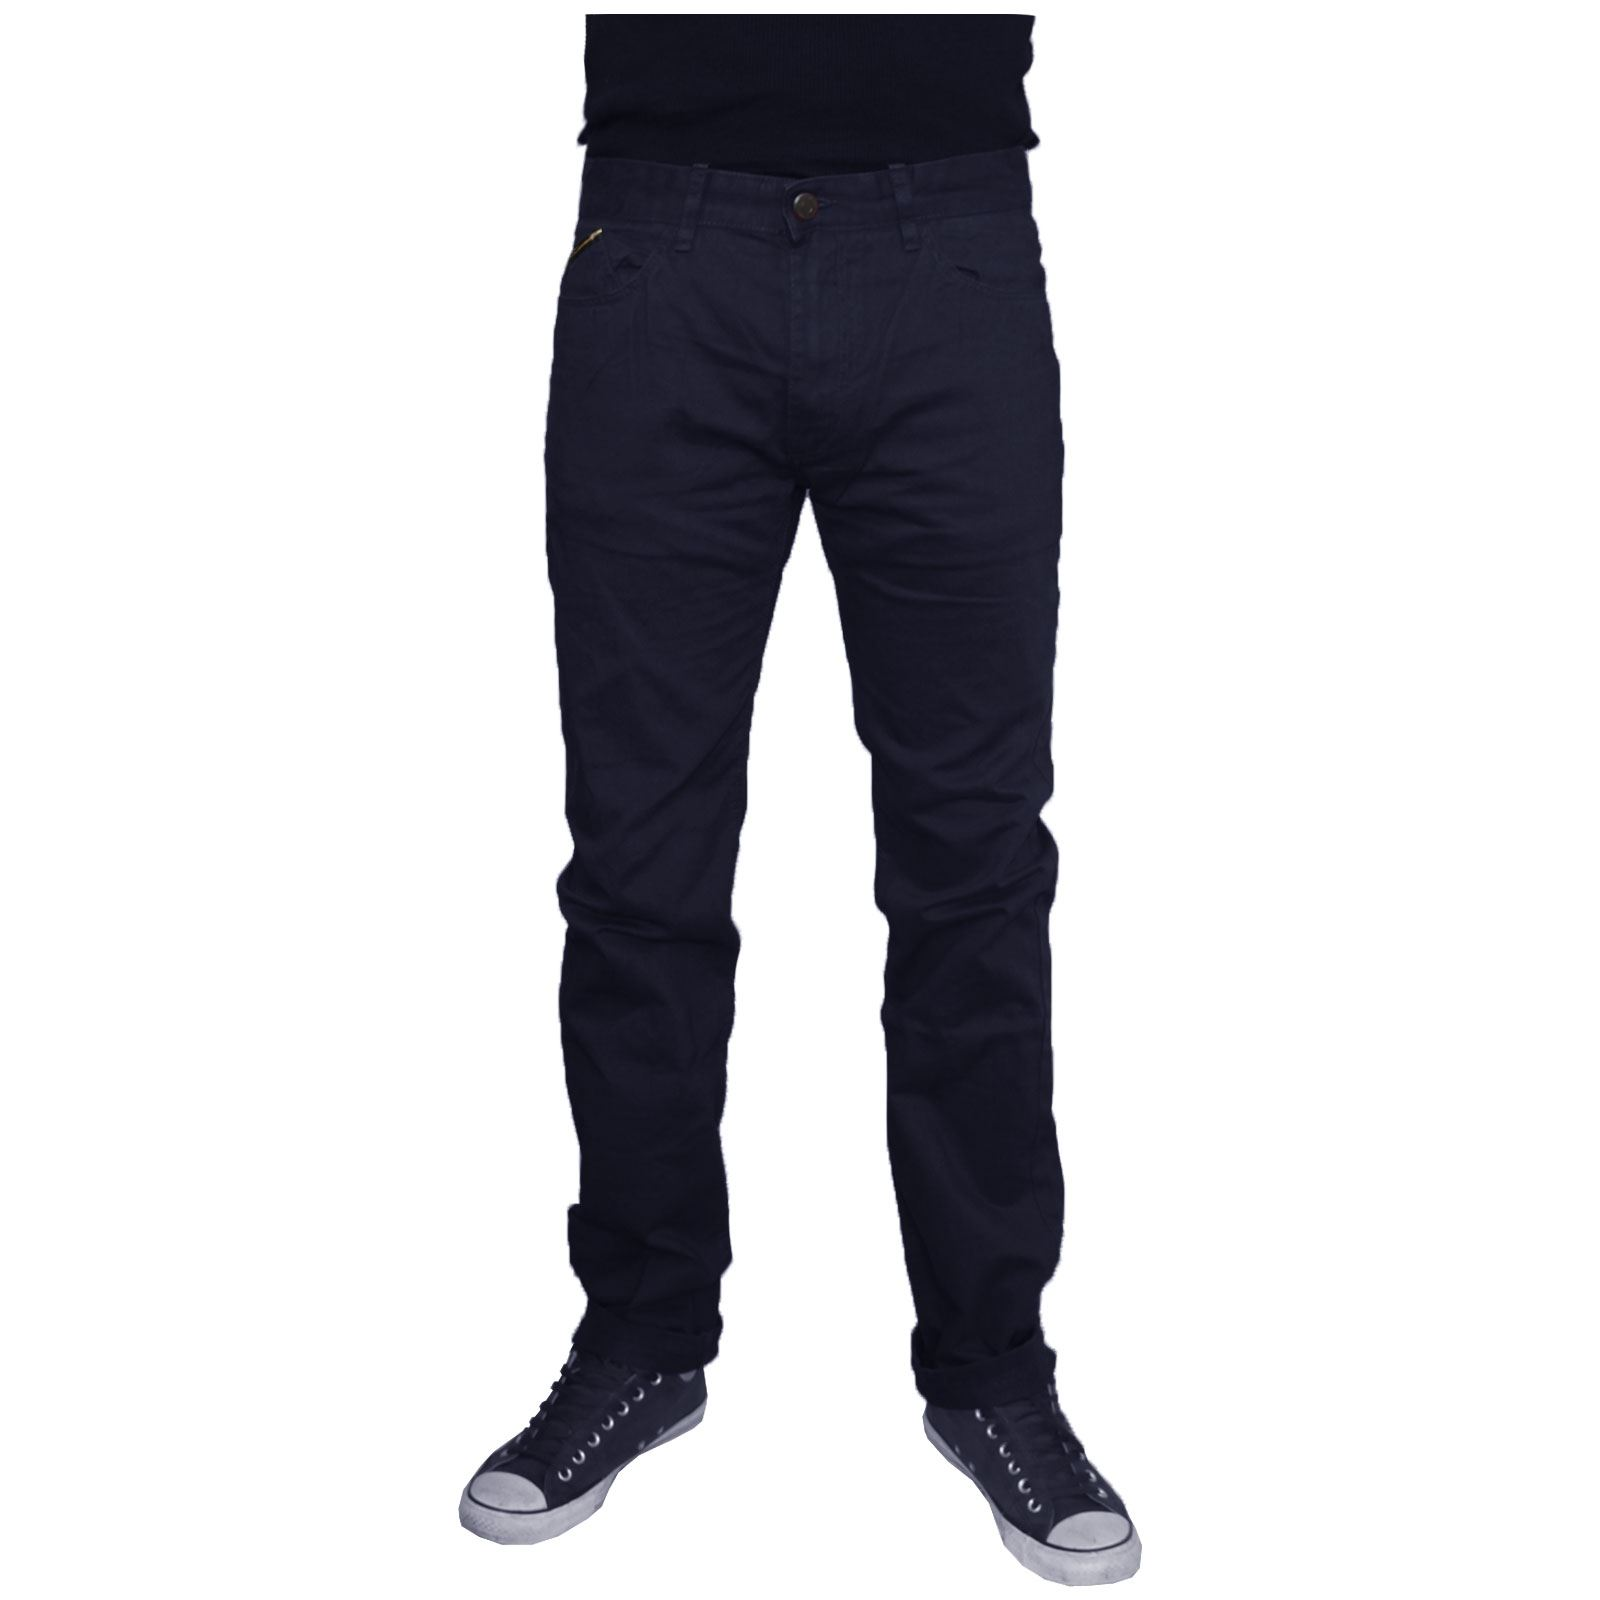 slim fit cargo pants and Men Clothing items found. Slim Fit Stretch Cotton Cargo Pants. $ Like. Mountain Khakis. Alpine Utility Pants Slim Fit. $ Like. Levi's® Mens. Slim Fit - Welt Chino. $ MSRP: $ 5 Rated 5 stars. Like. Independence Day Clothing Co.